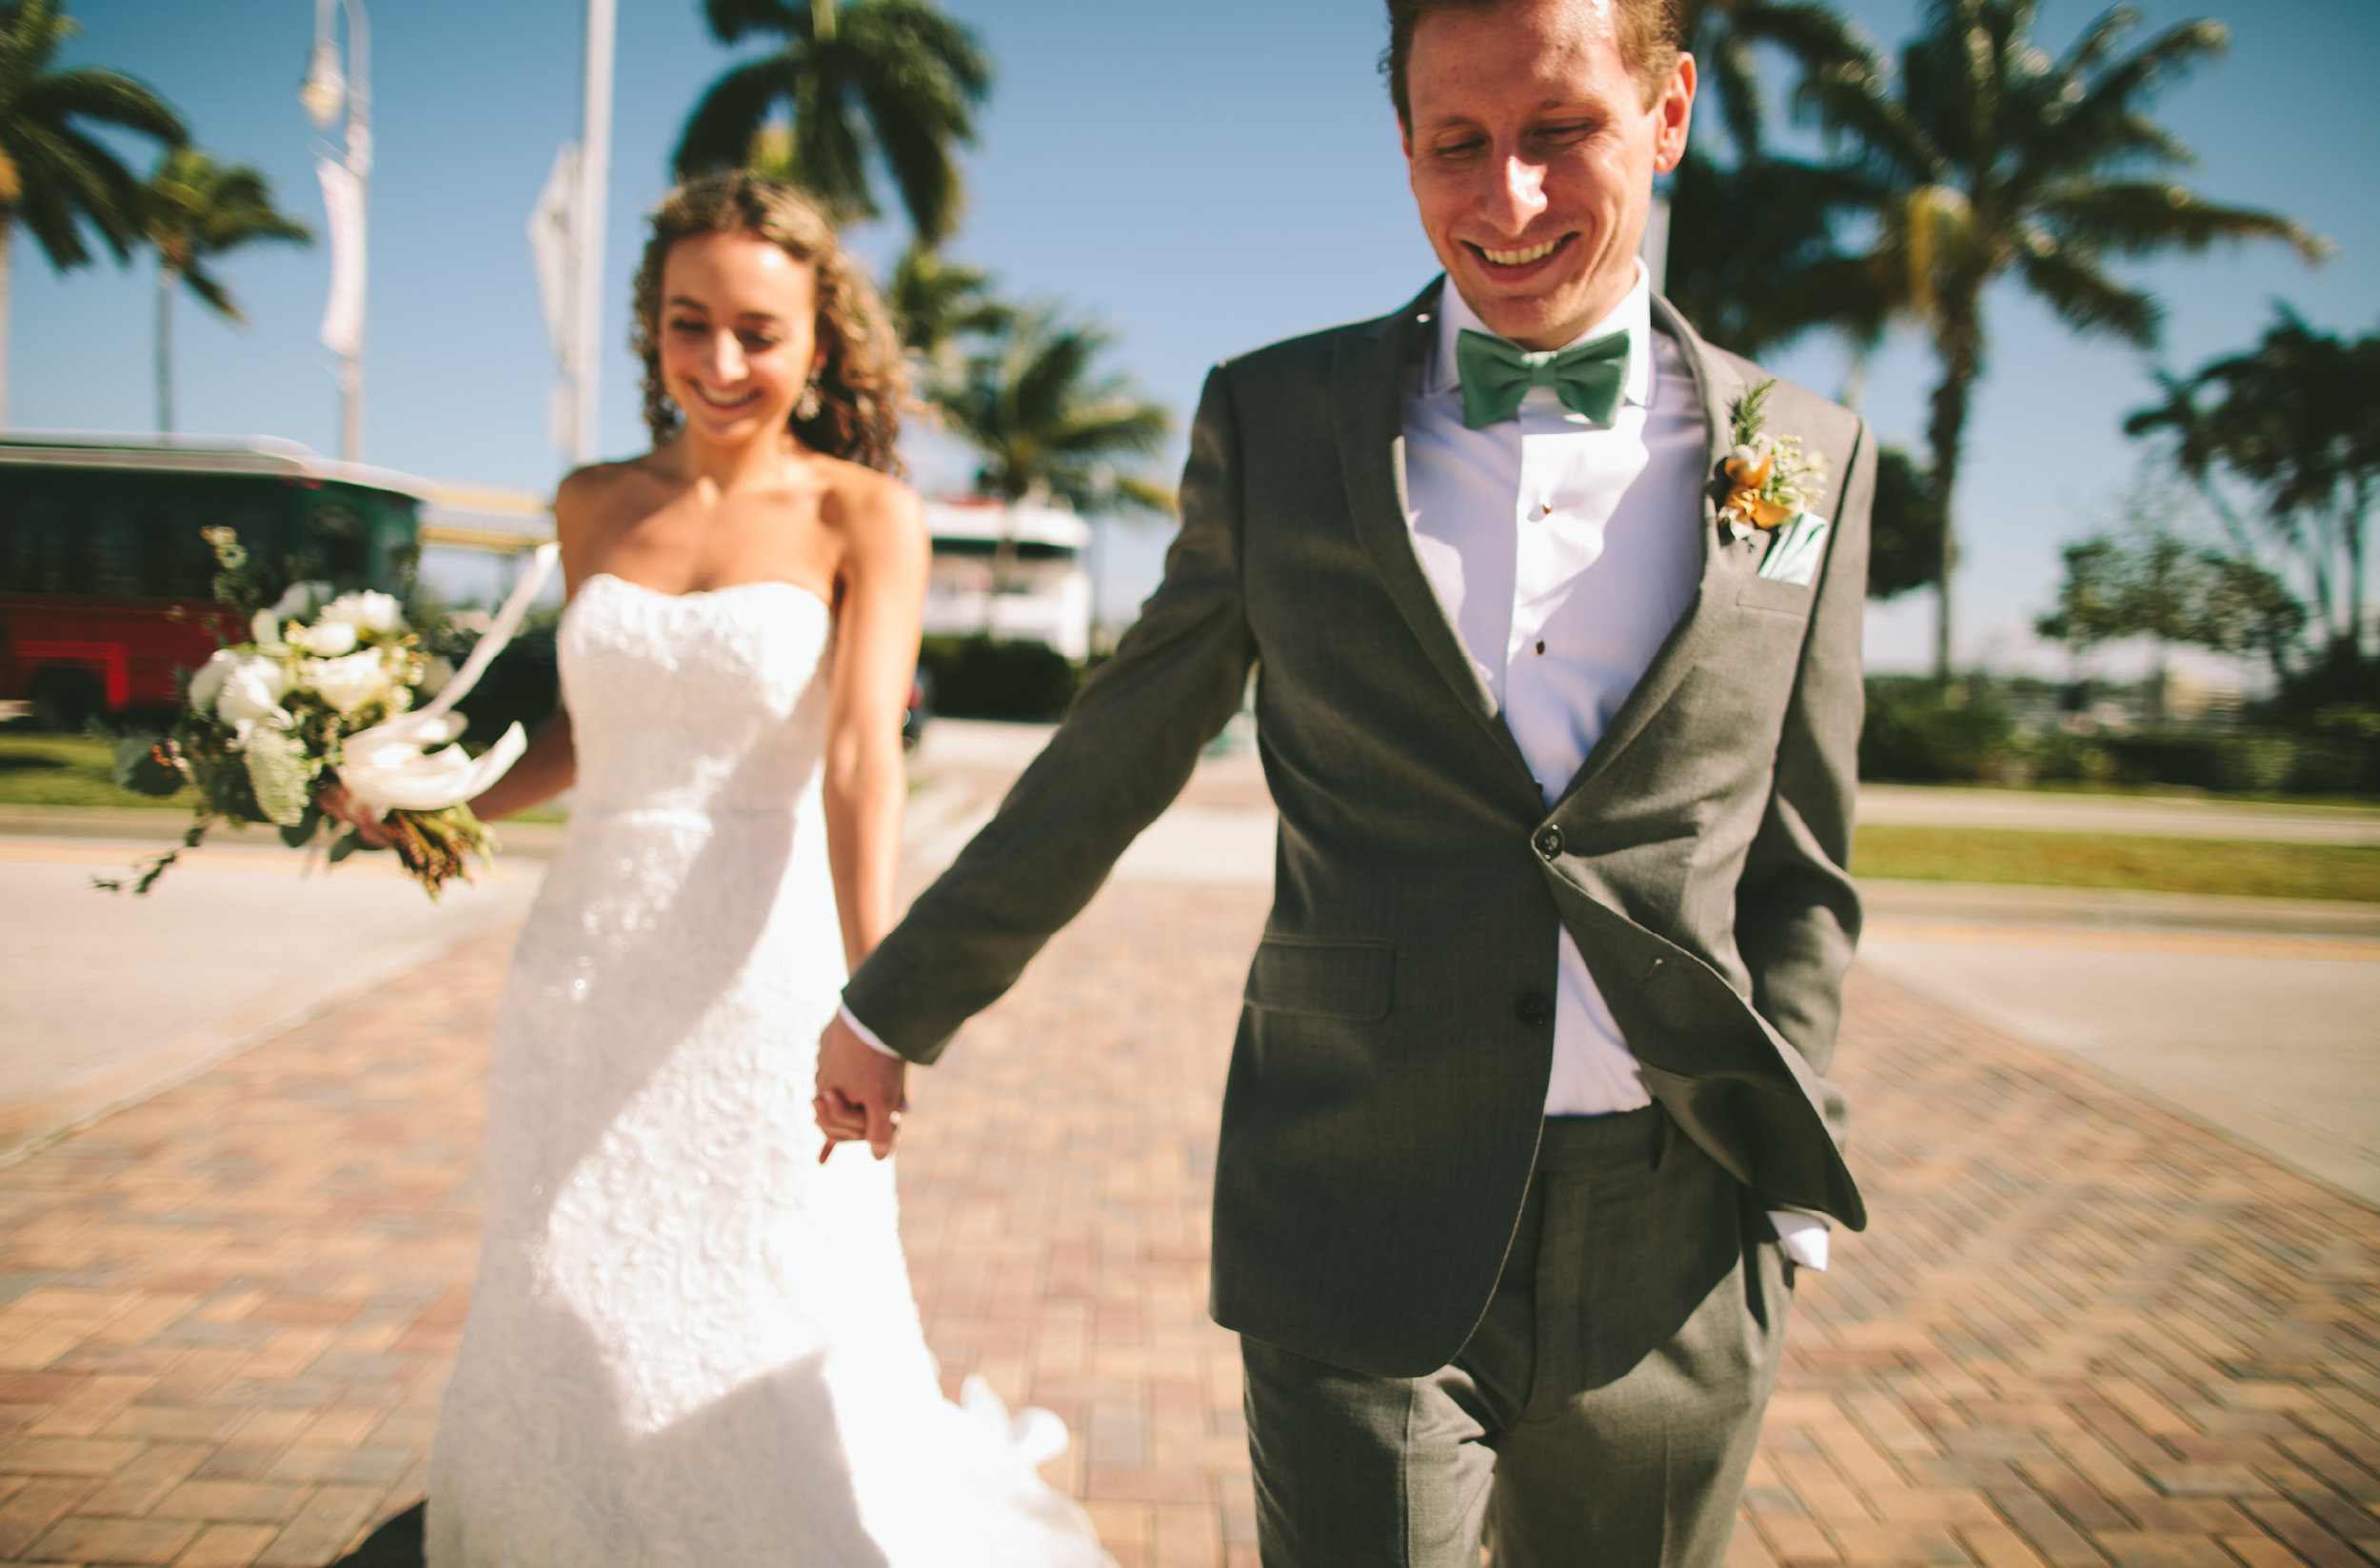 Briana + Bryan Wedding at the West Palm Beach Lake House 36.jpg